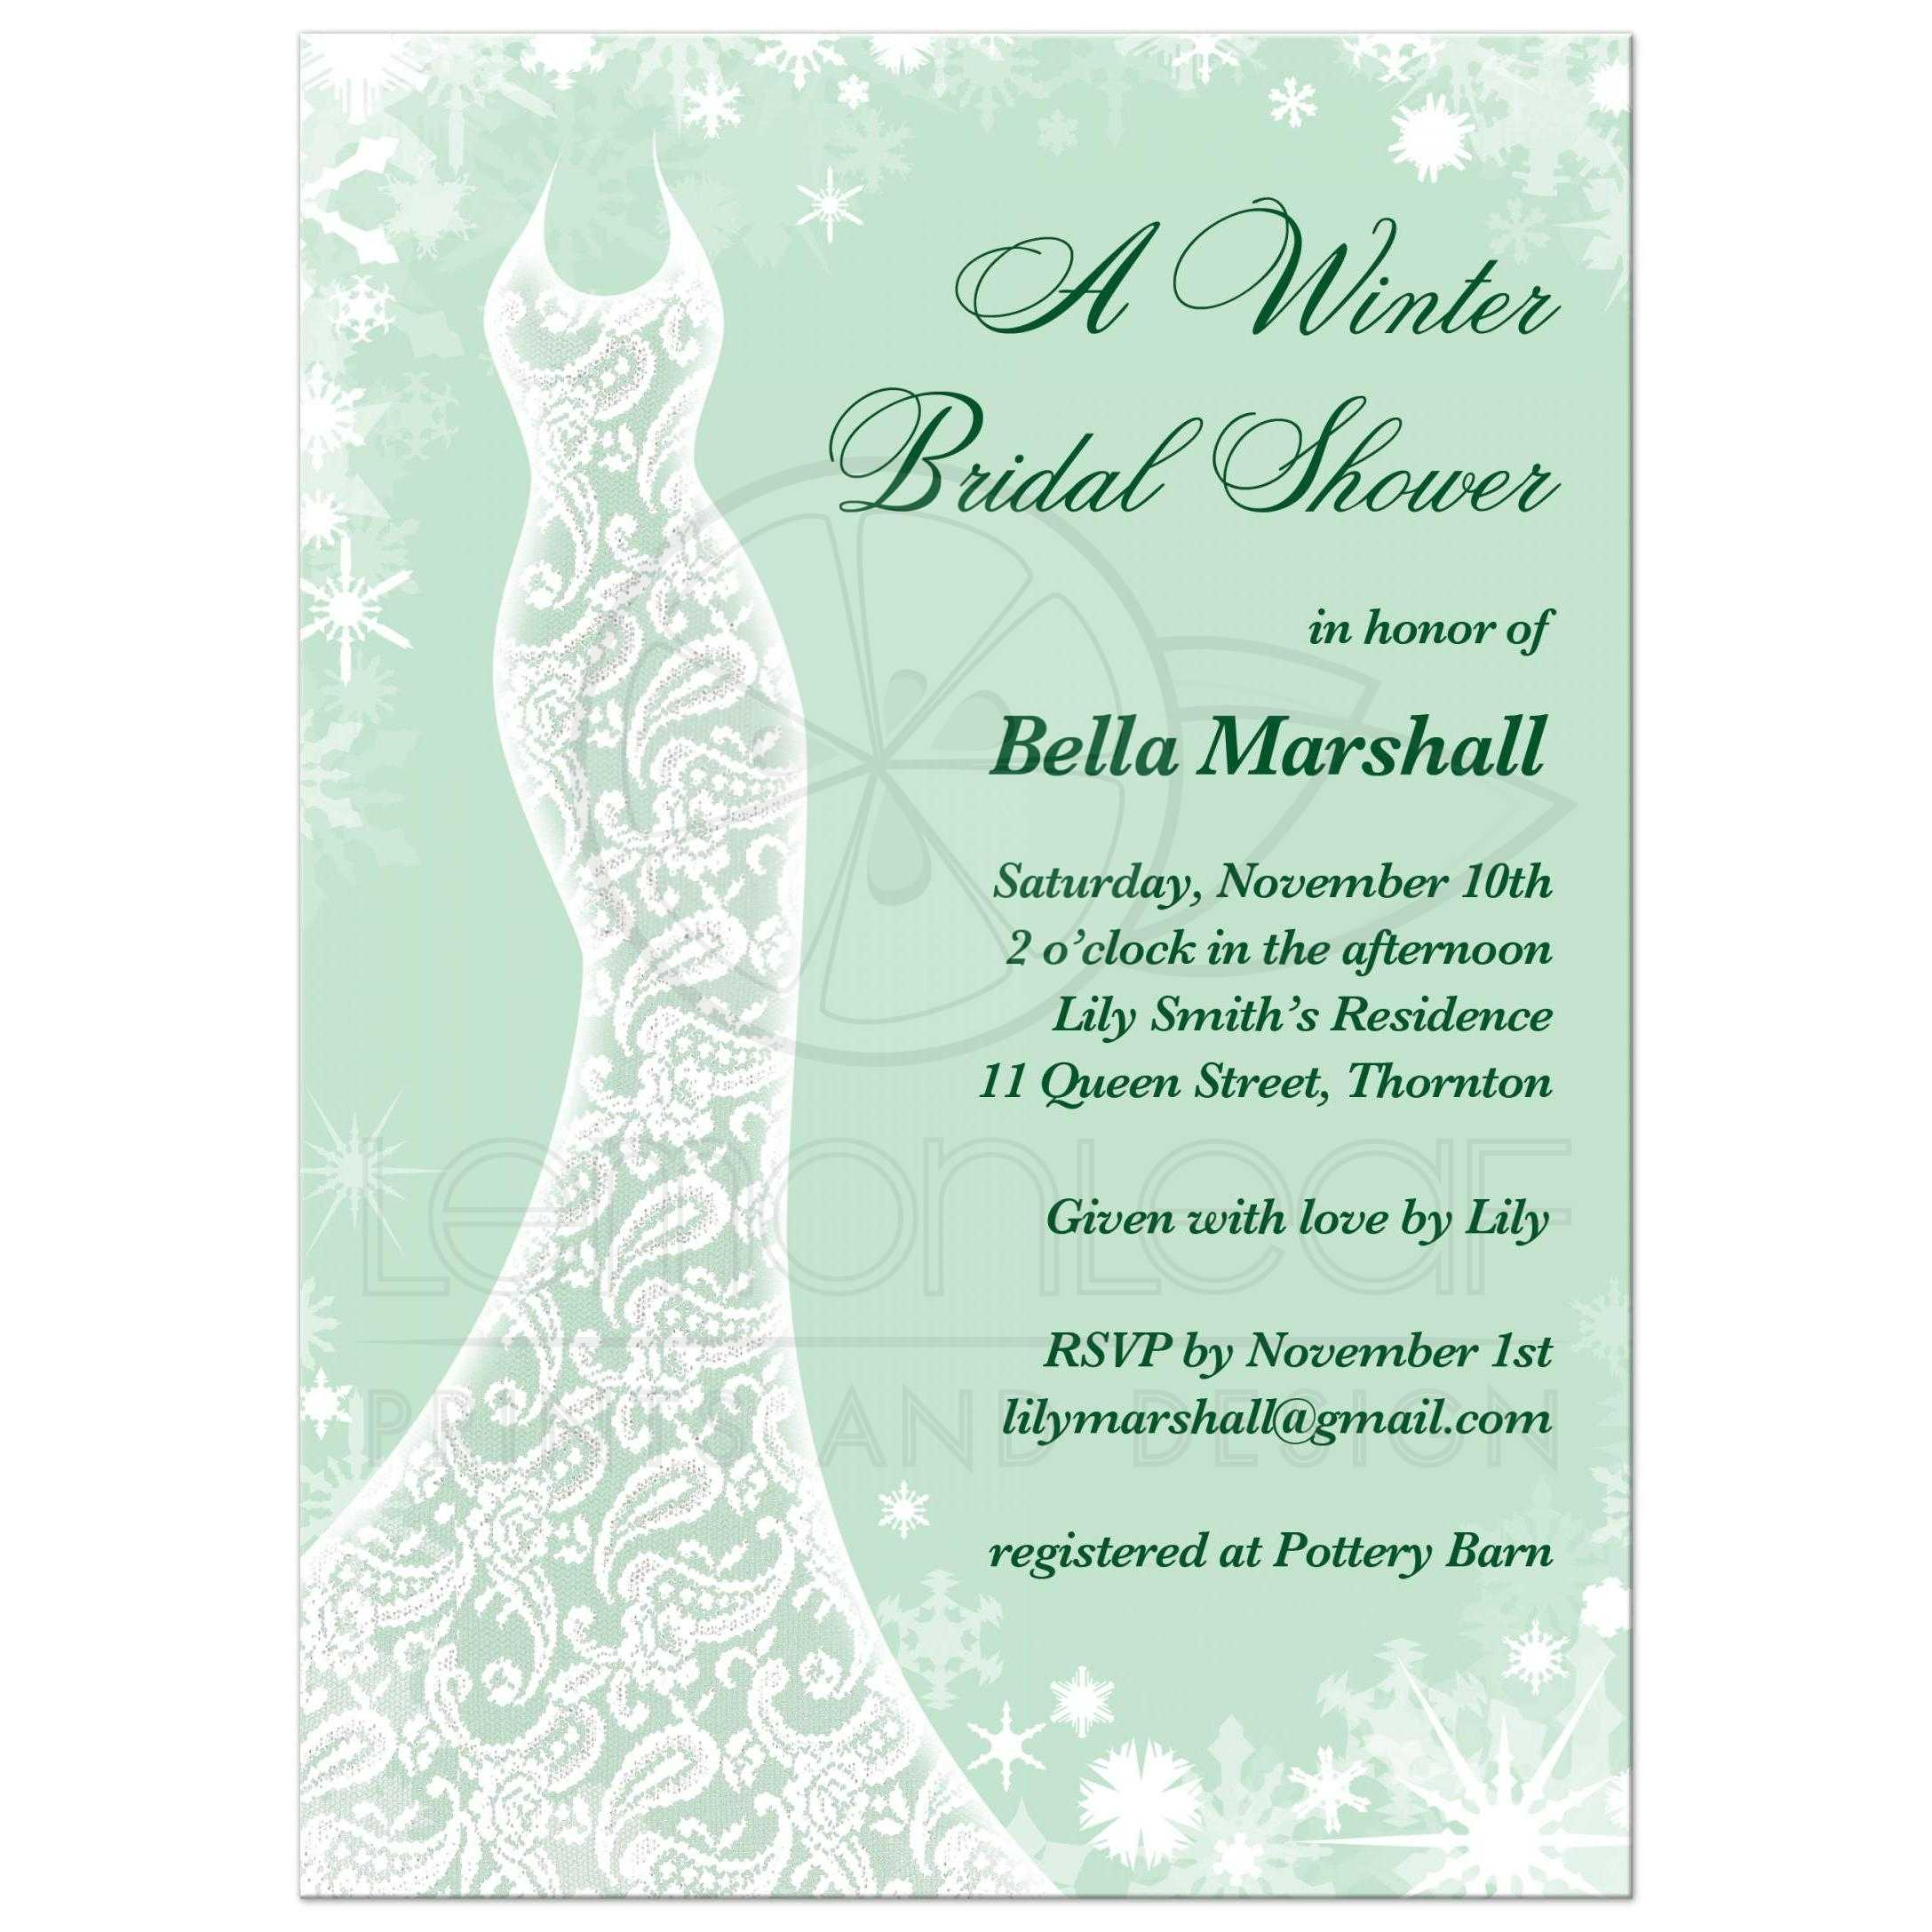 Snowflakes And A Lacy Wedding Dress Decorate This Mint Green Winter Bridal Shower Invitation: Blank Wedding Invitations Snow Flakes At Reisefeber.org